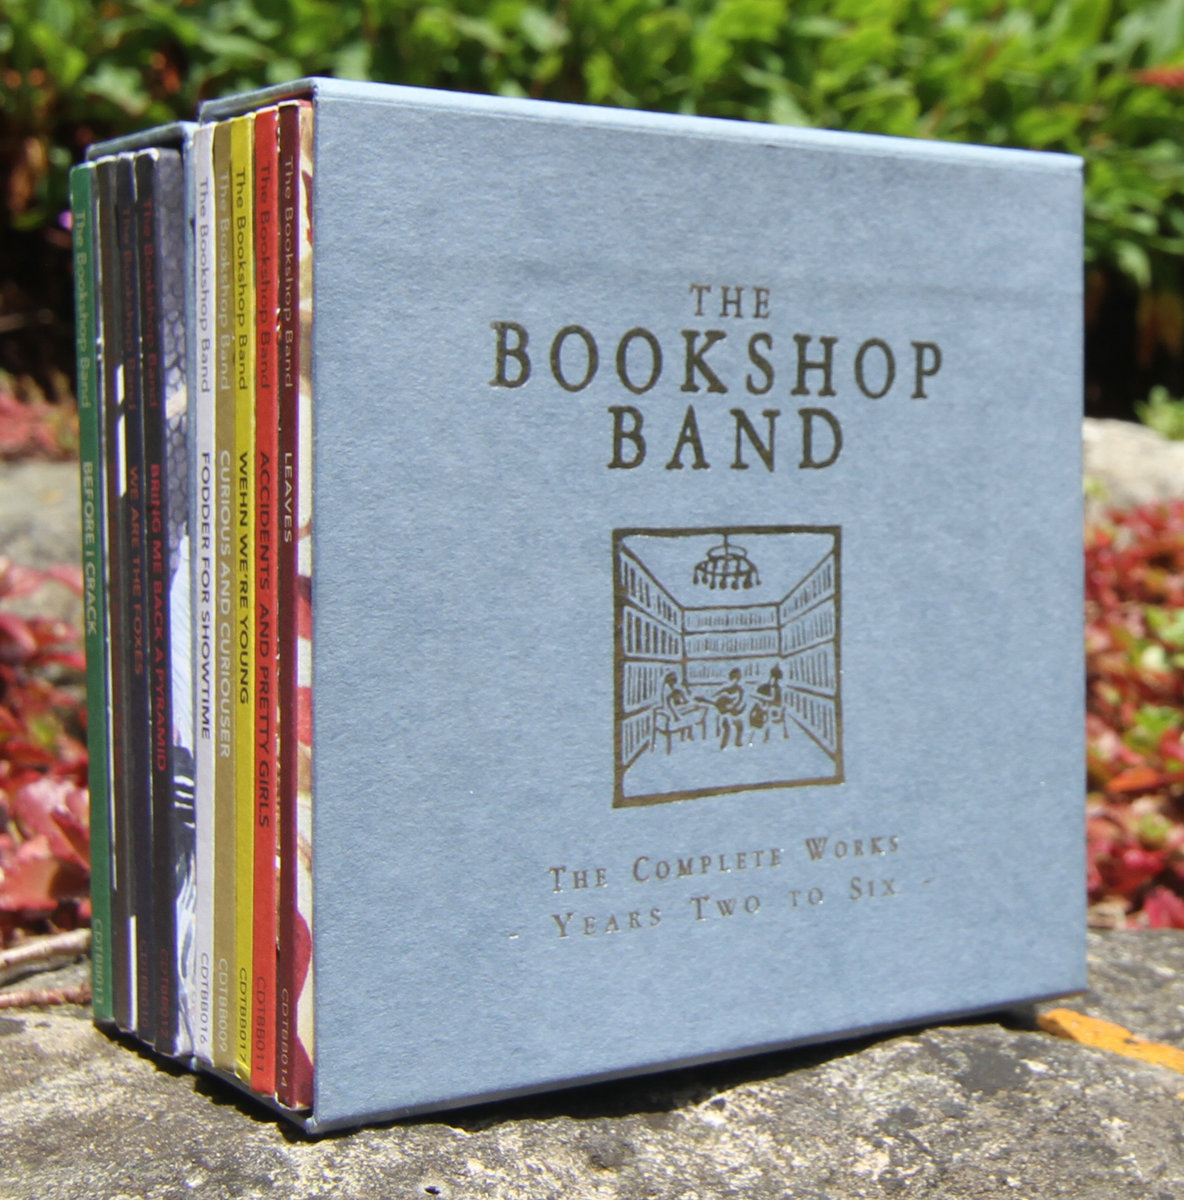 The Complete Works (Years 2 - 6) | The Bookshop Band